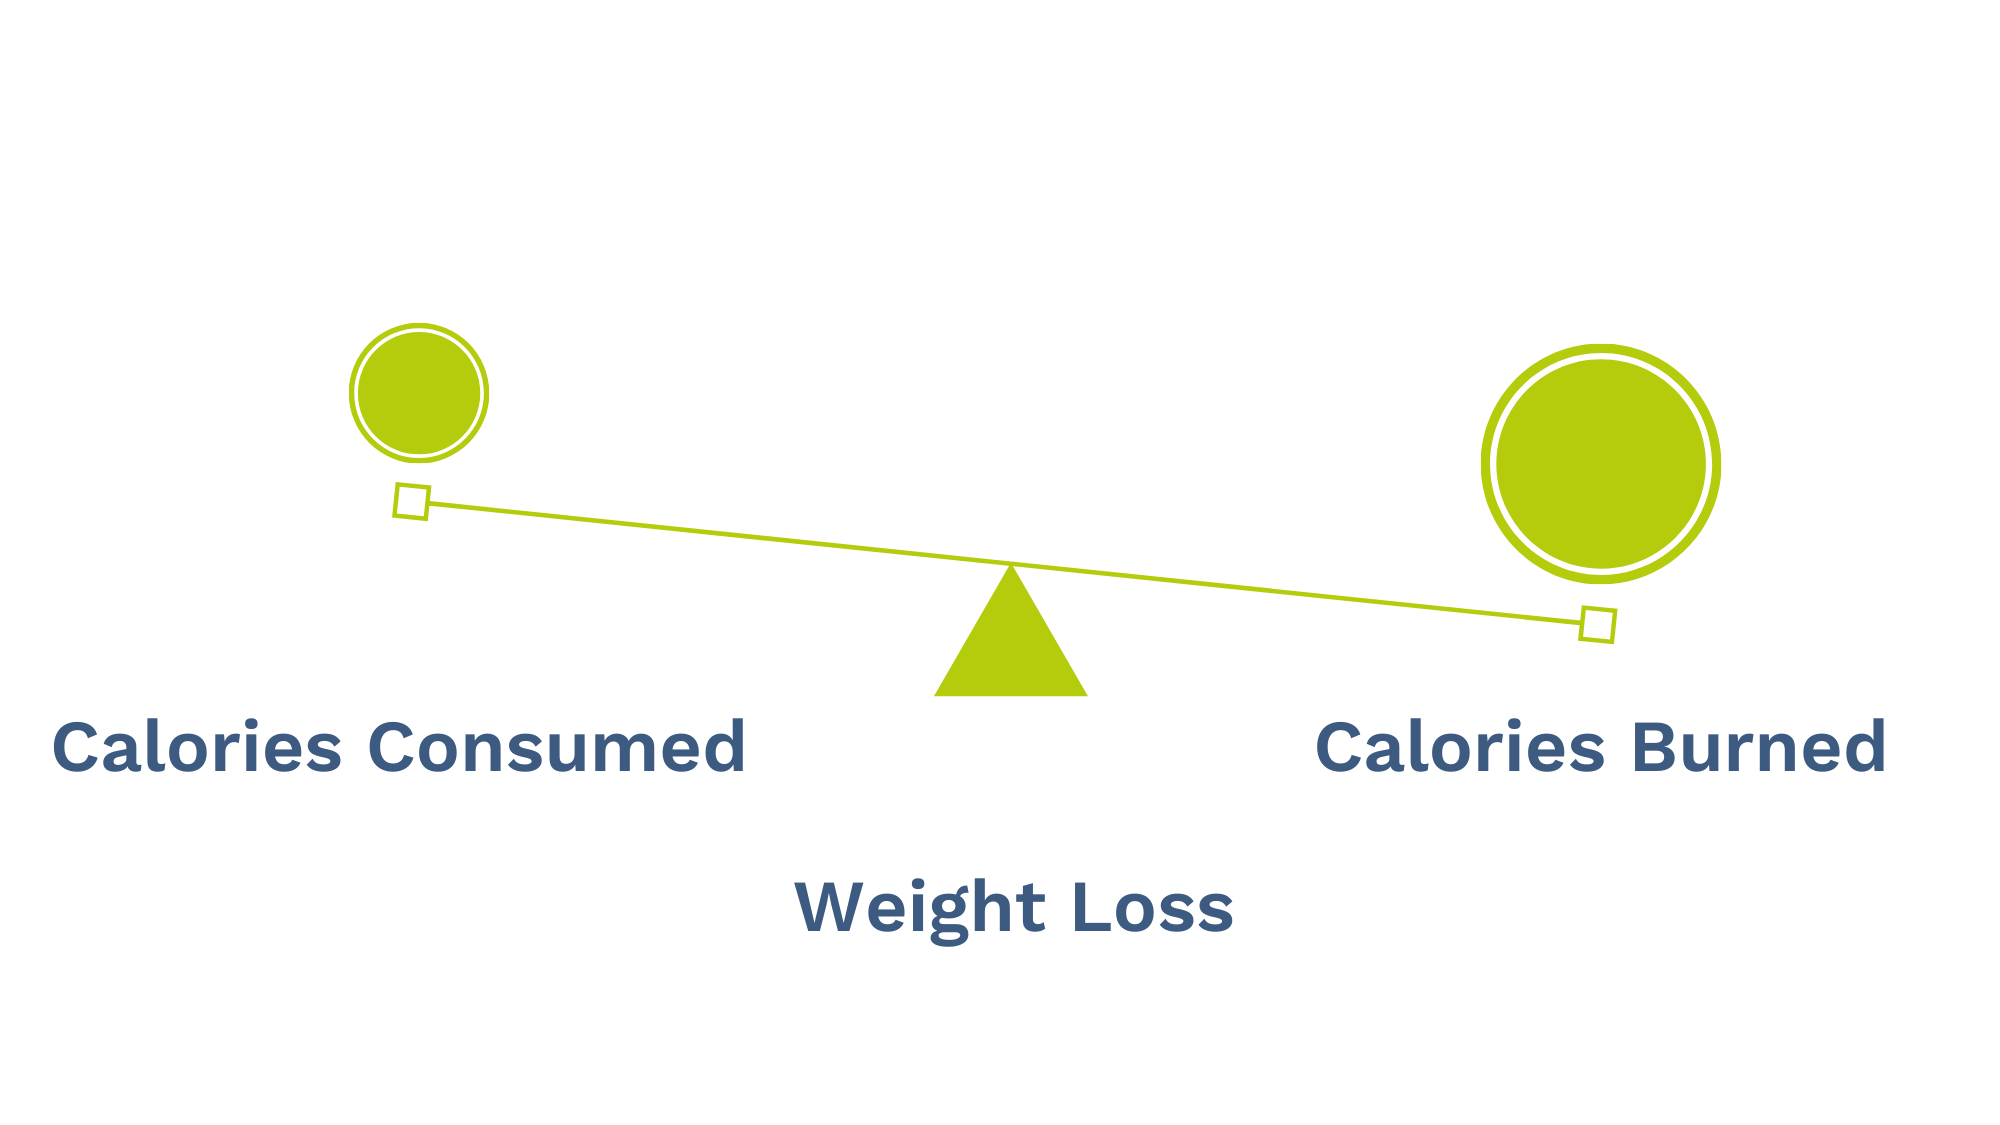 Energy balance - weight loss